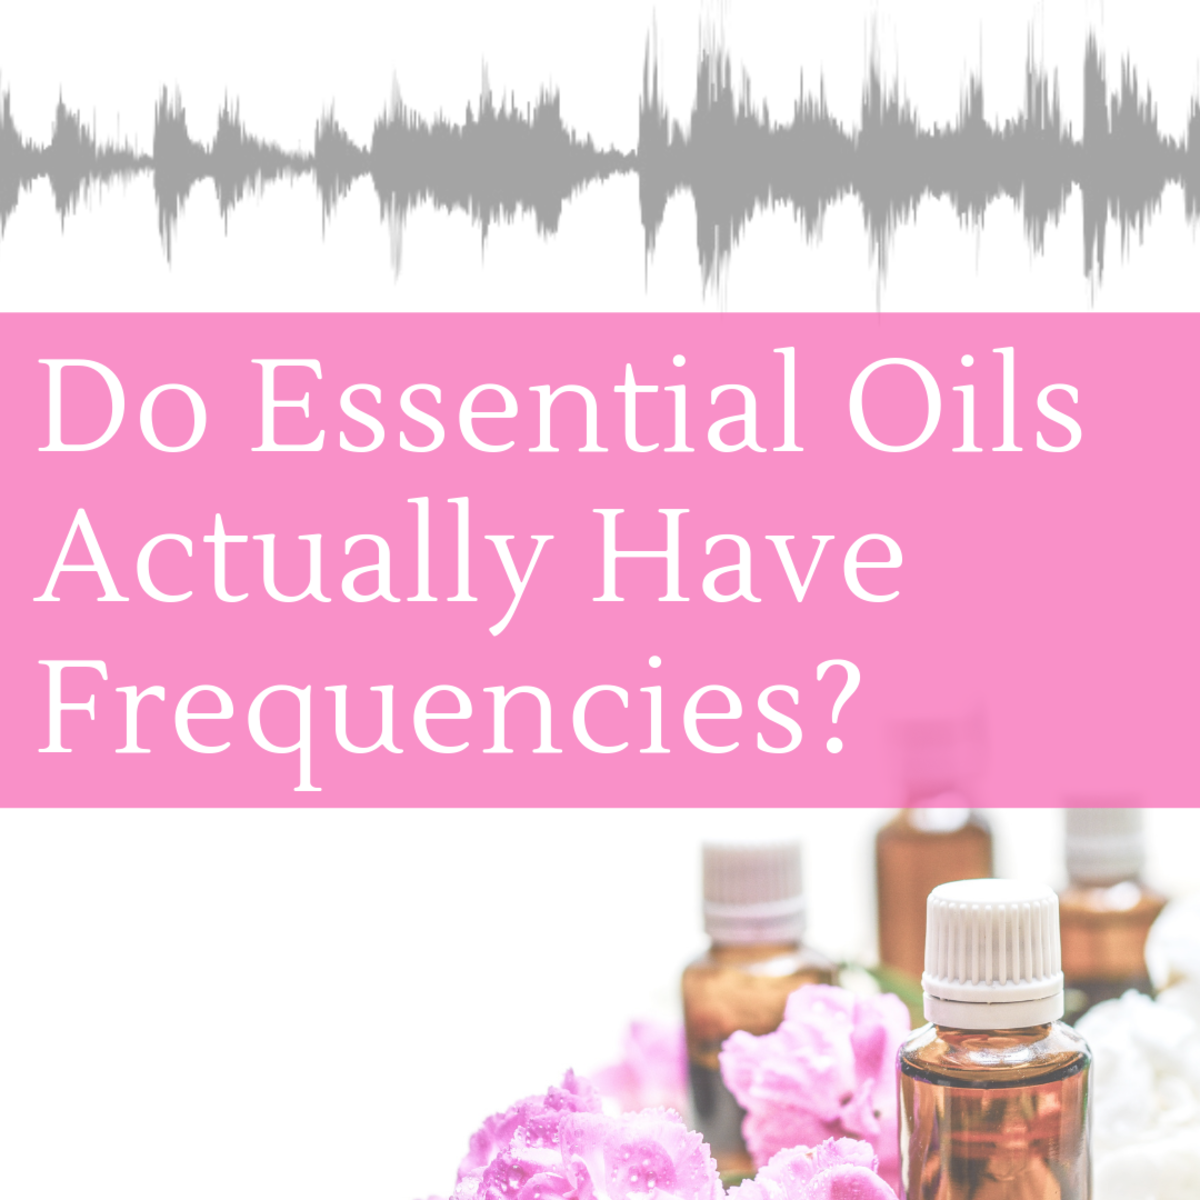 Is there any real science behind the claim that essential oils have the highest frequencies of any organic substance?